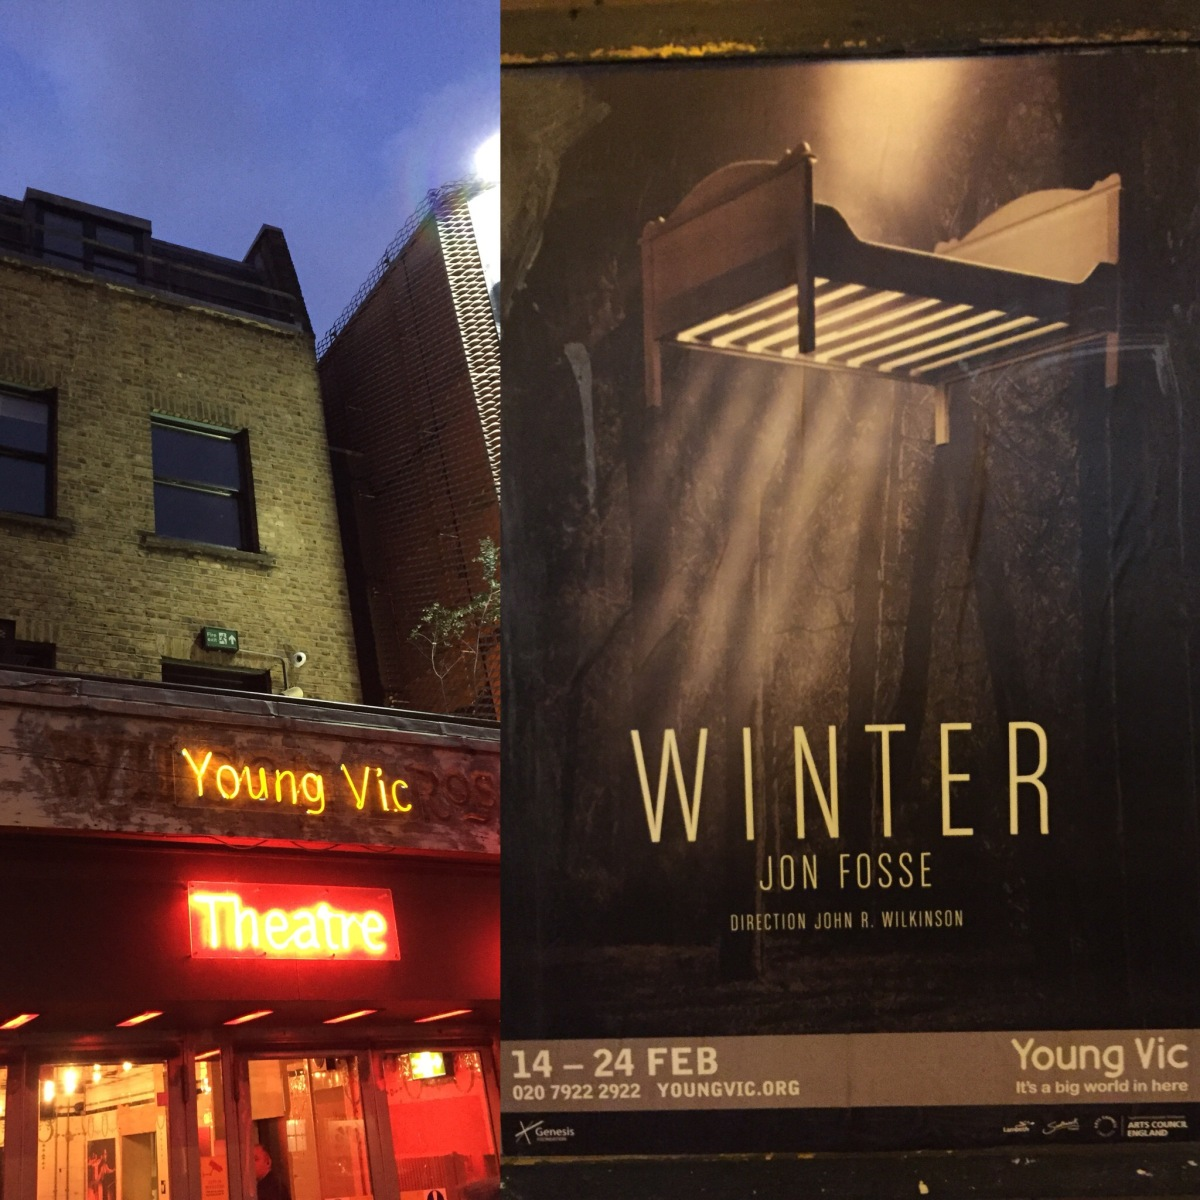 The entrance to the Young Vic theatre, and a poster for the Winter play, with shafts of light shining through the wooden slats in the bottom of a bed suspended in the air.